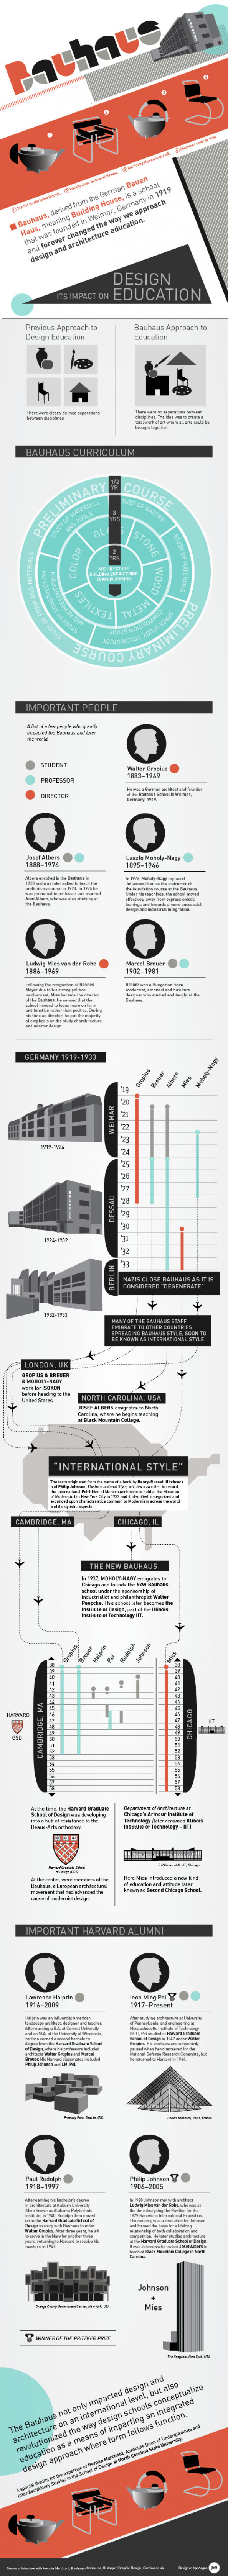 The Bauhaus Infographic